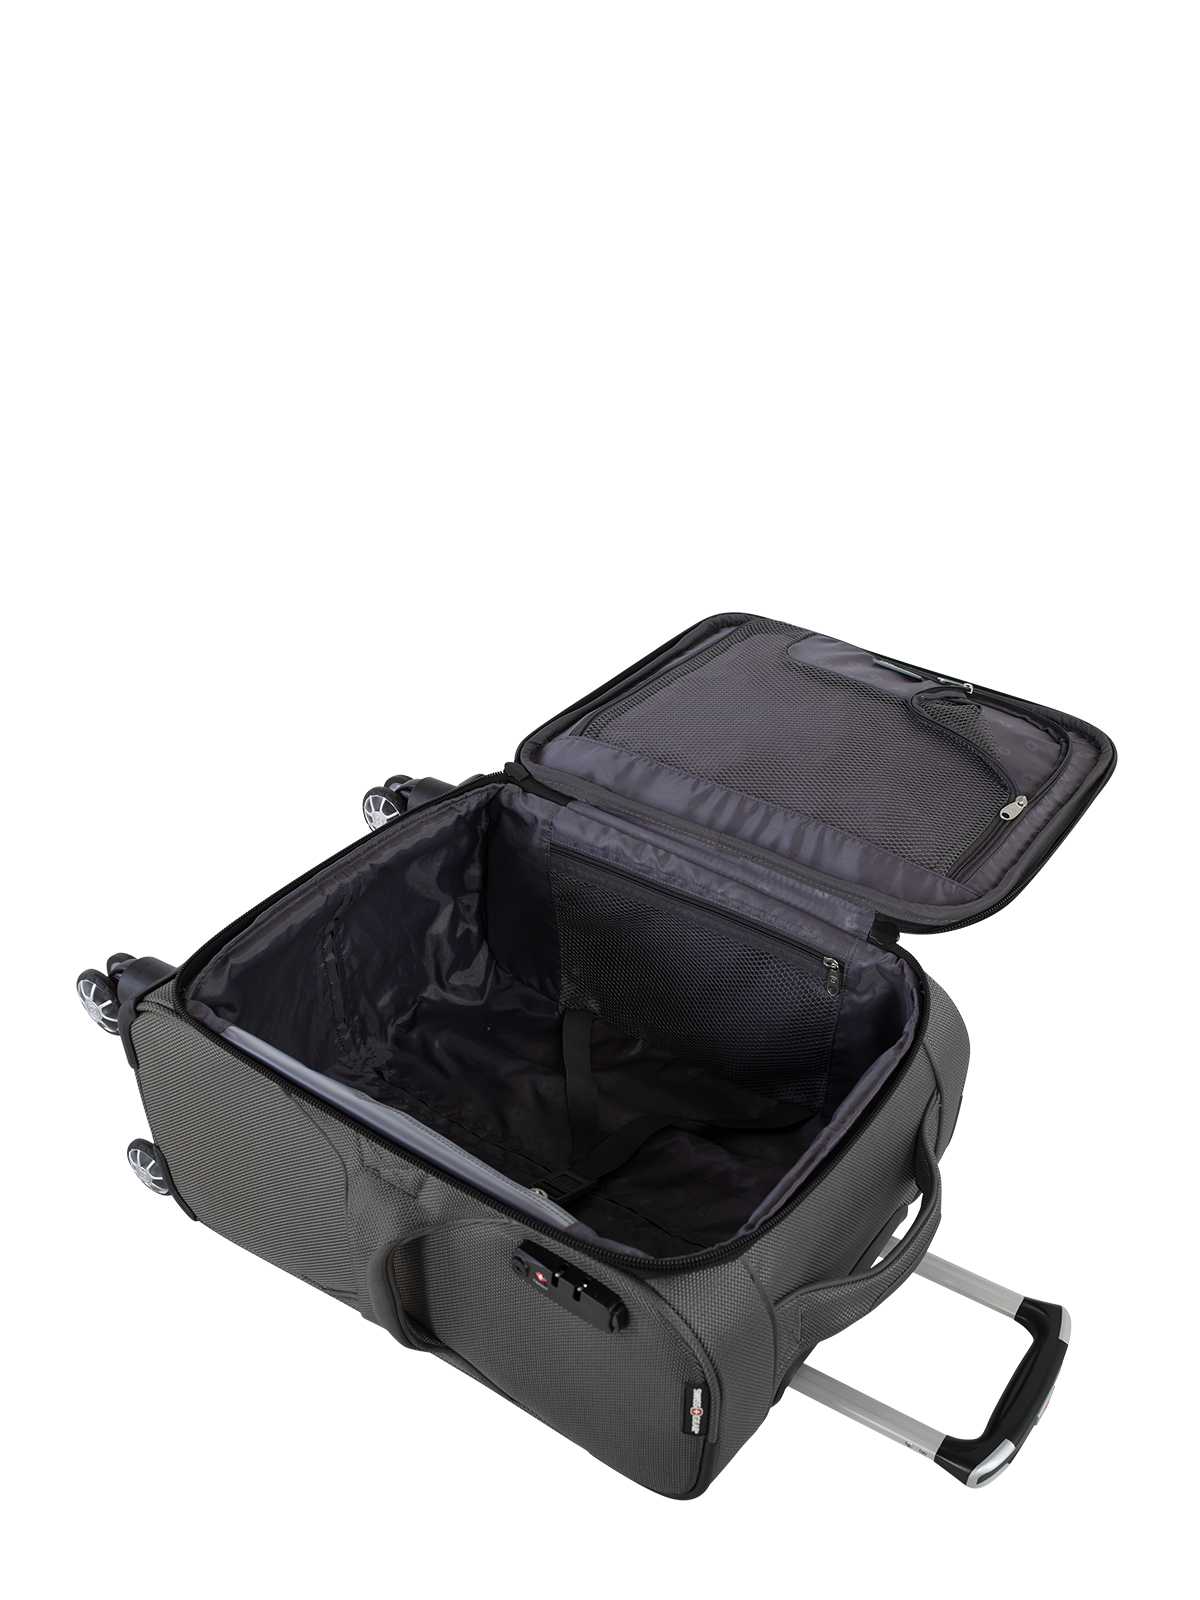 Swiss Gear Neolite 3 Collection Carry On Soft Side Luggage